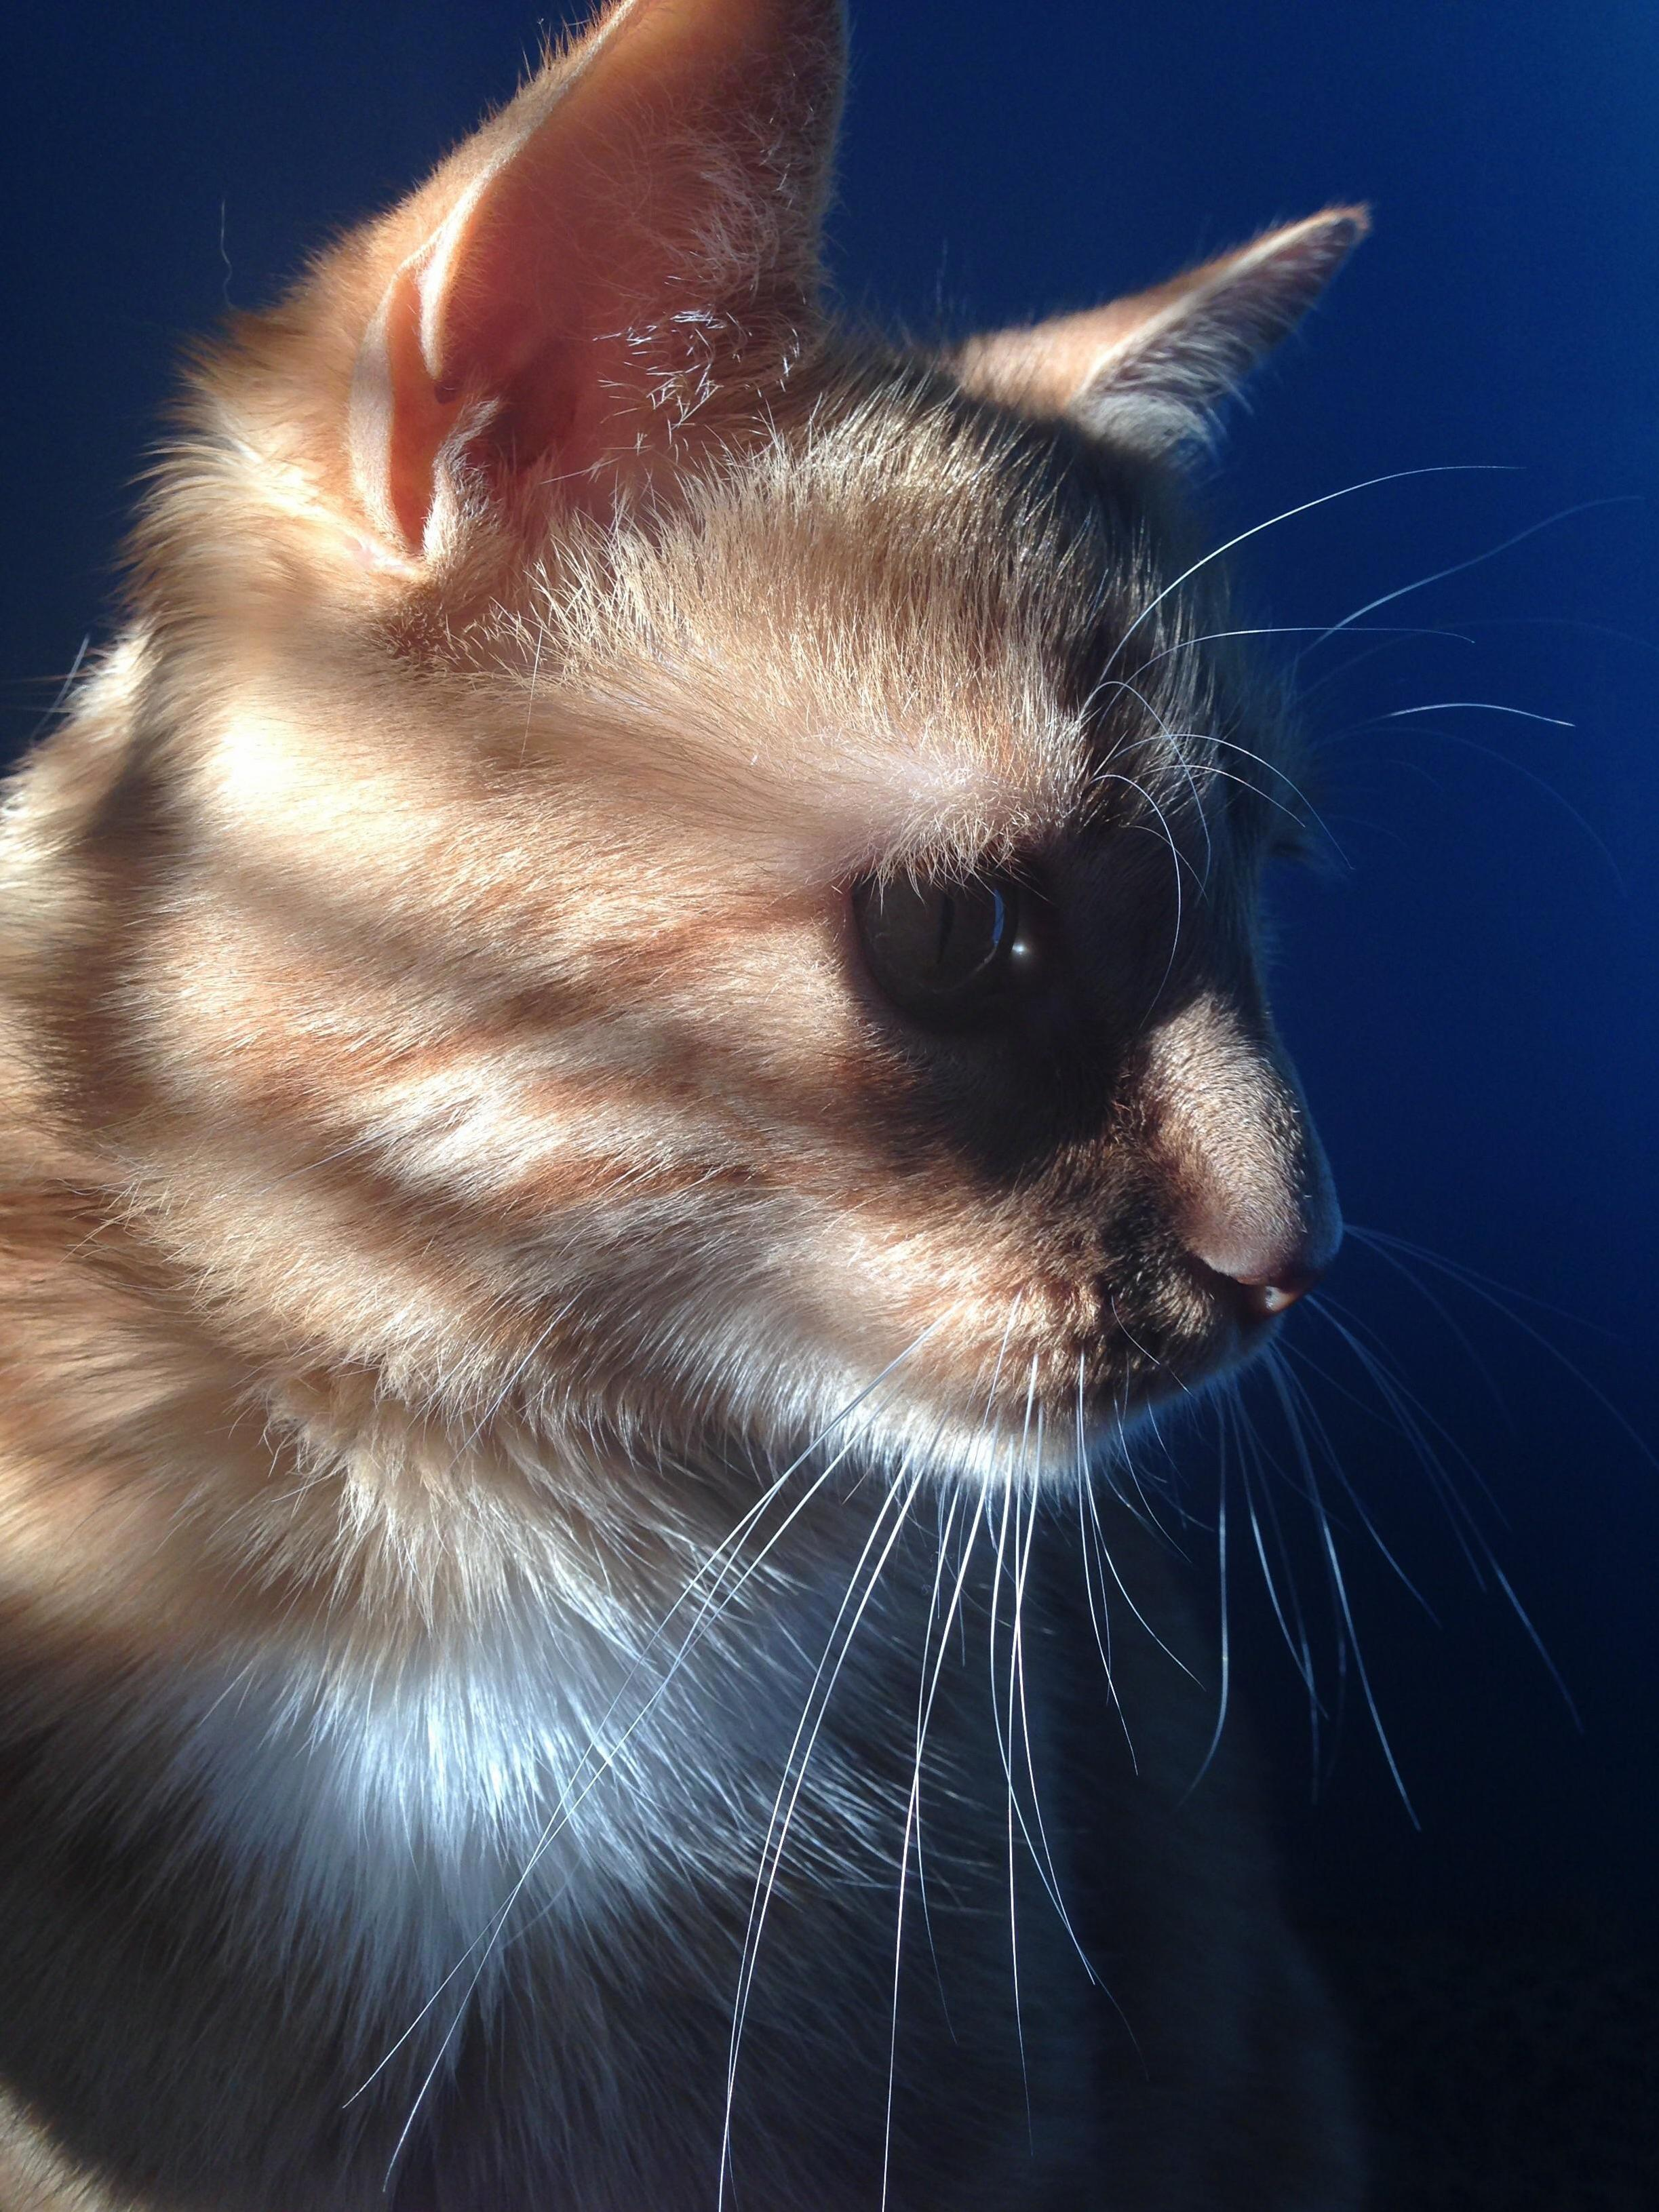 Cheddar modeling in the sunlight